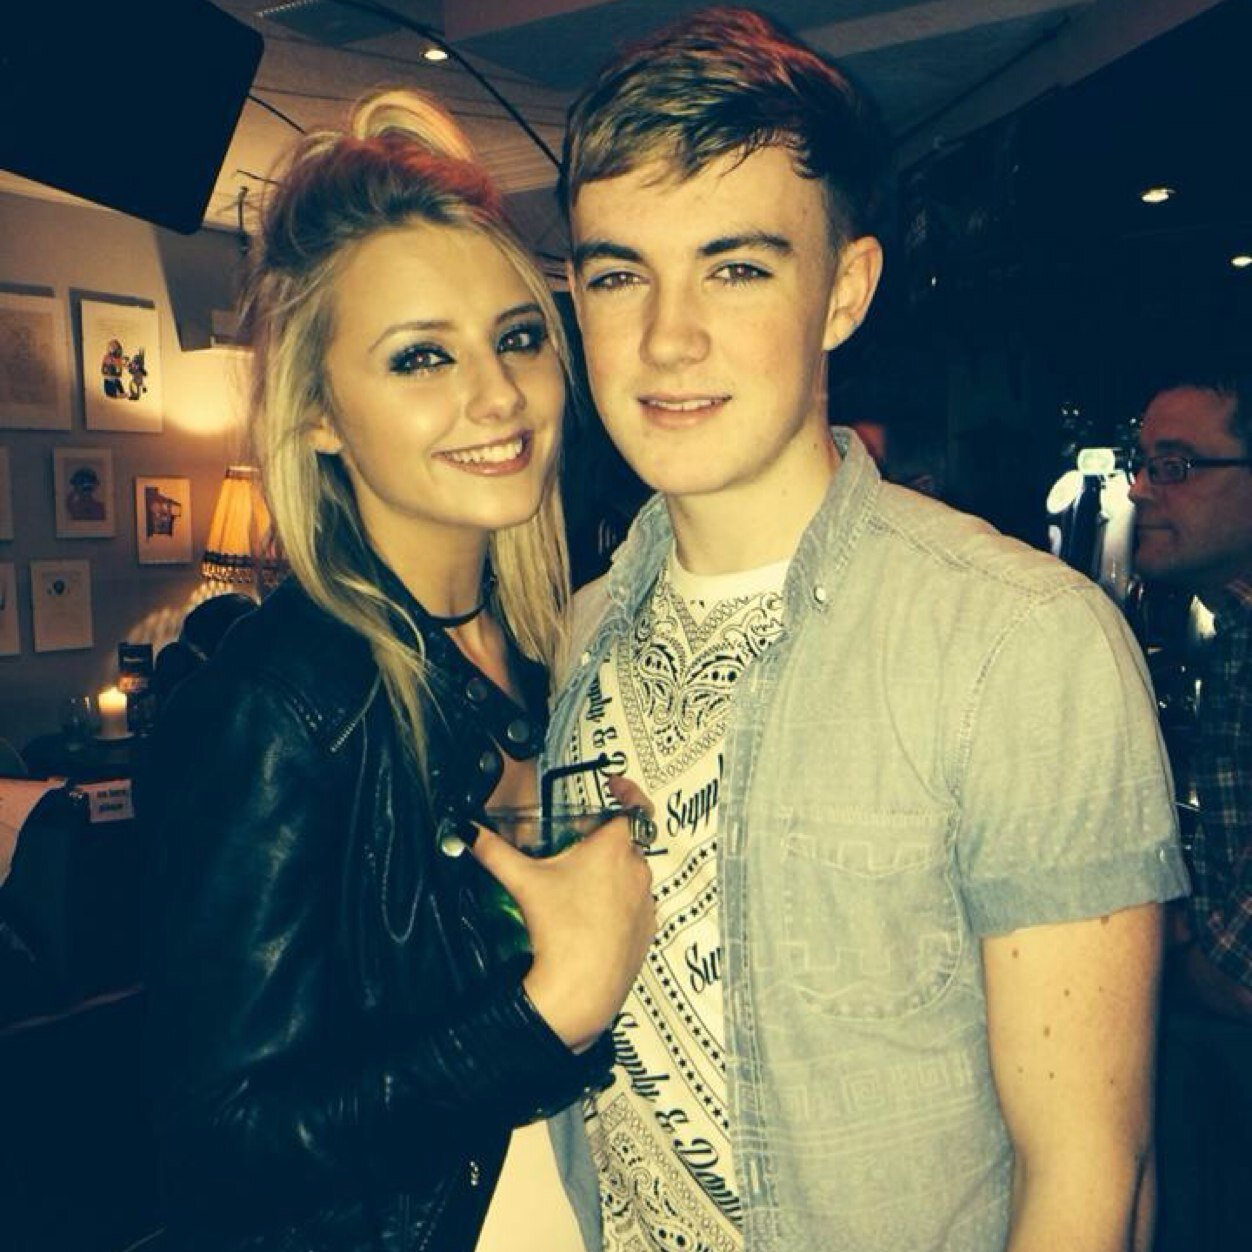 Scally dating